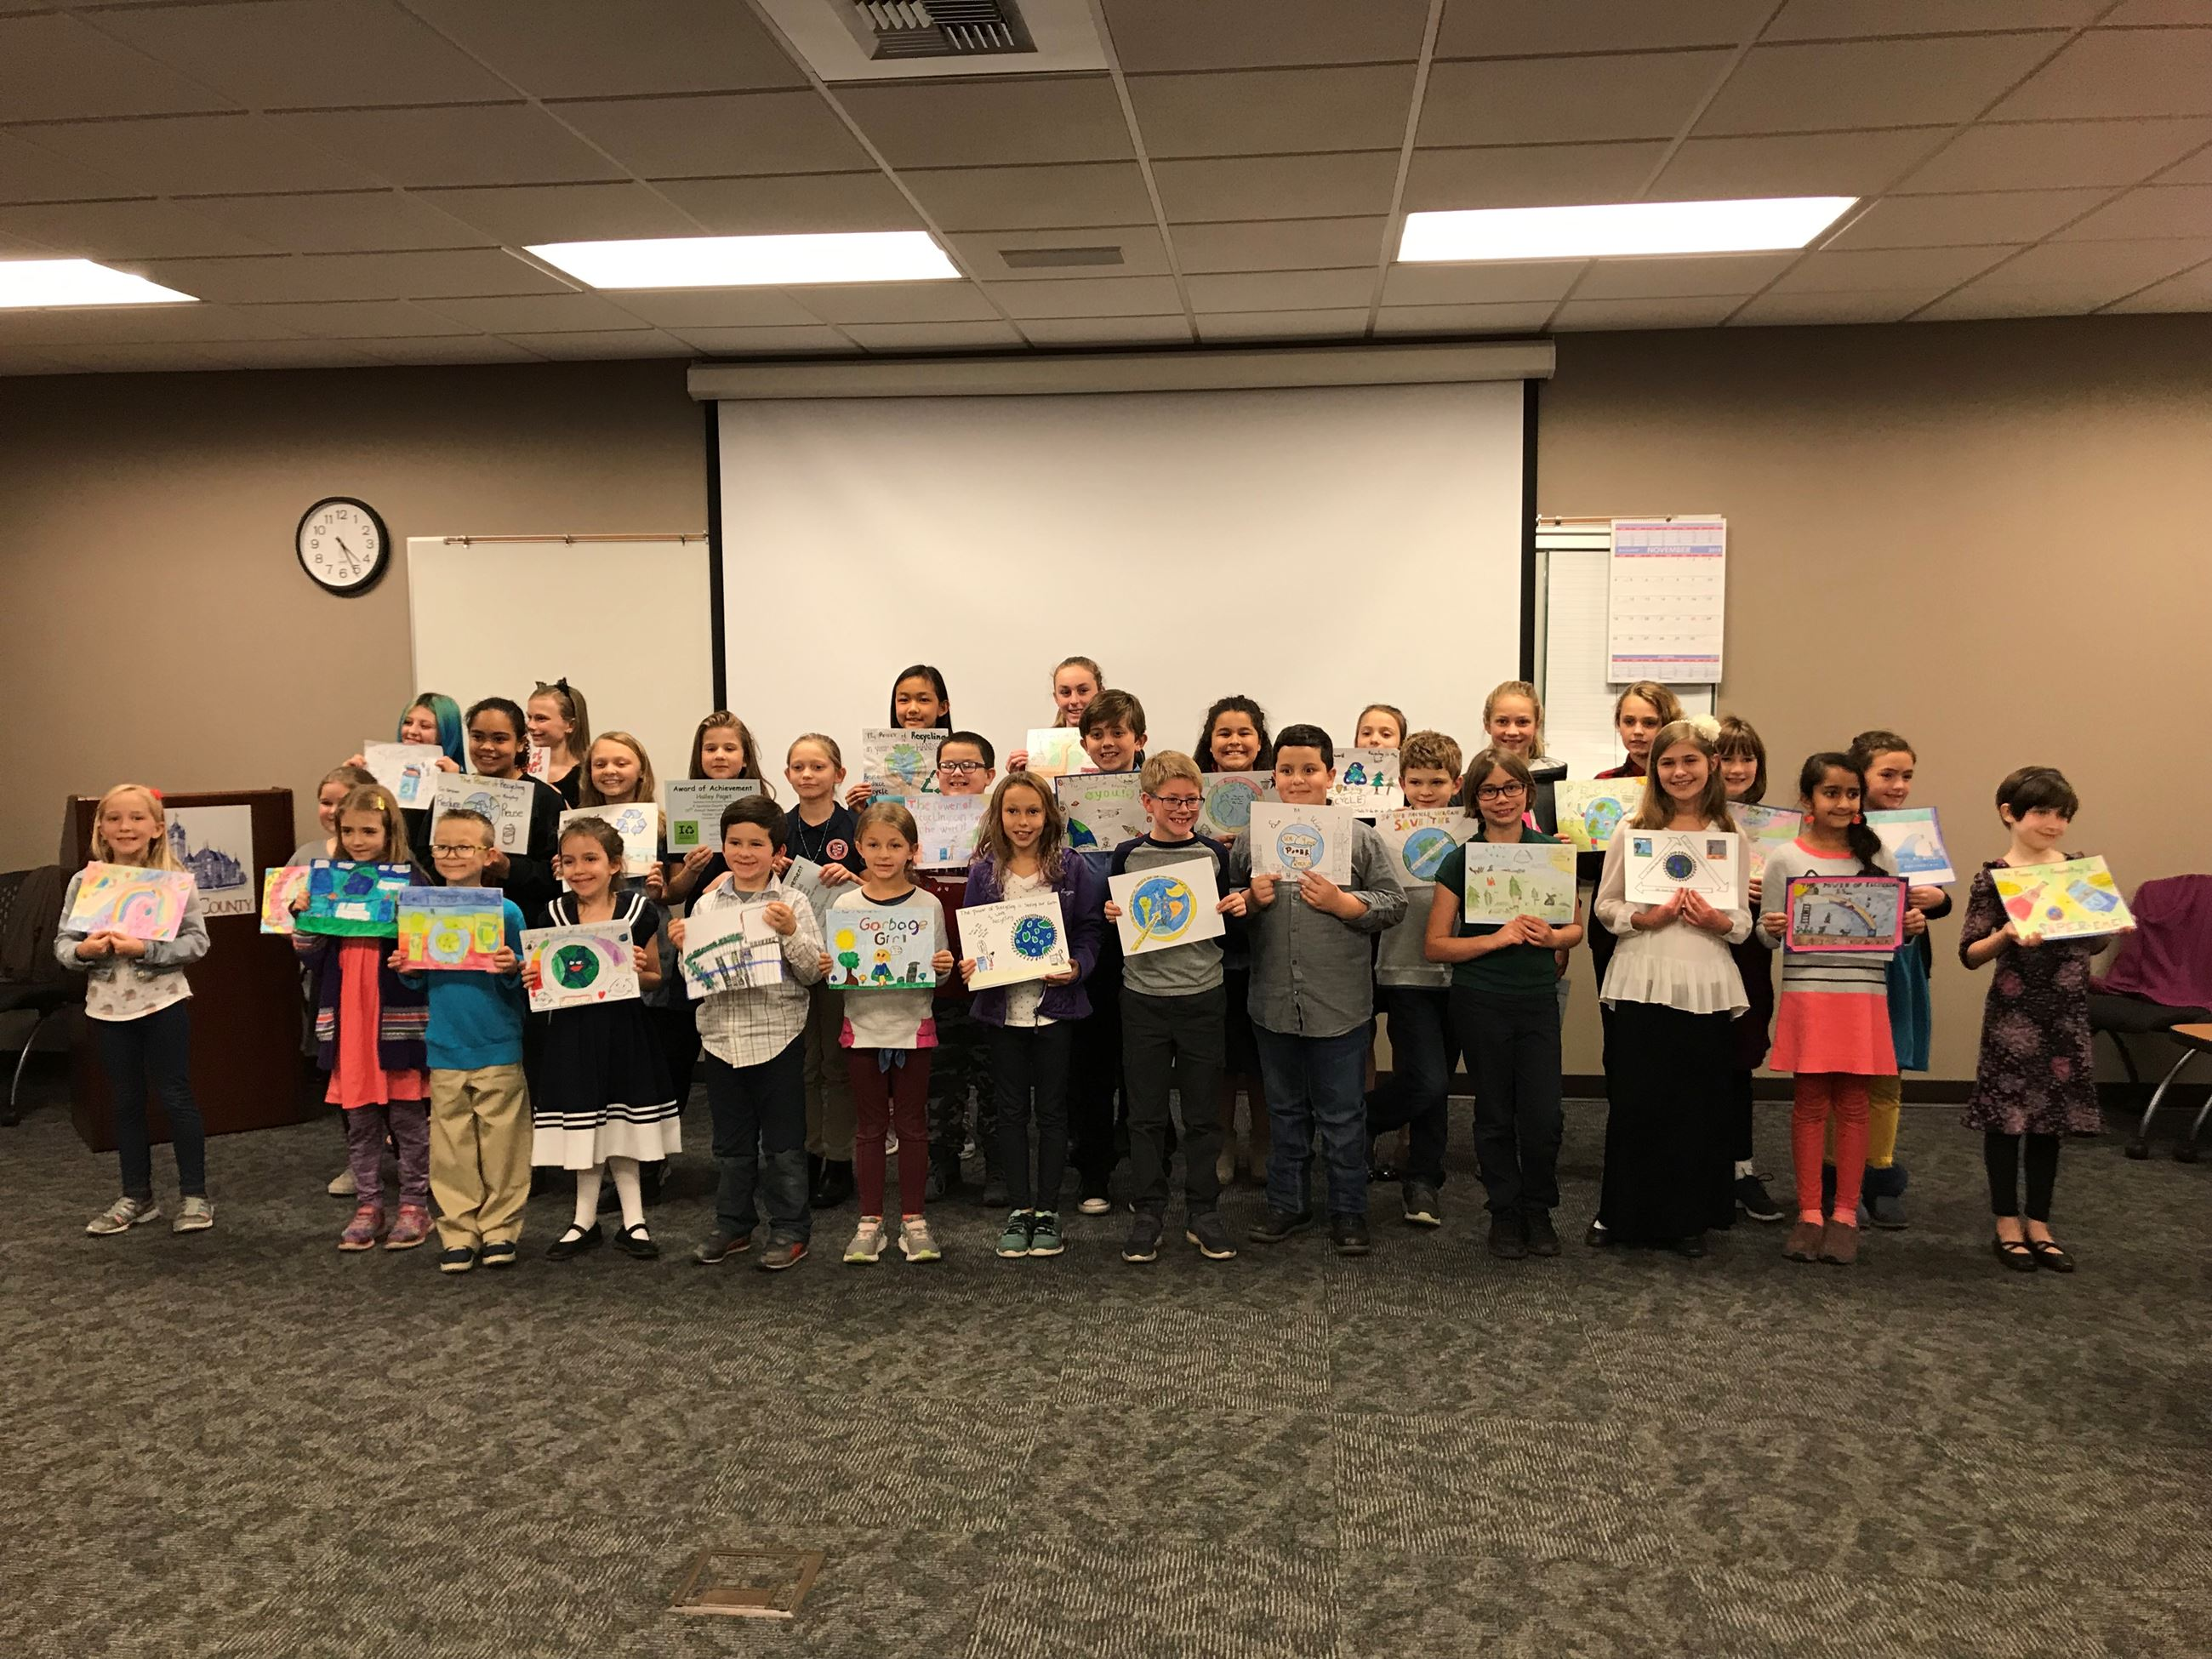 Group Photo_Spokane County Recycles Poster Contest